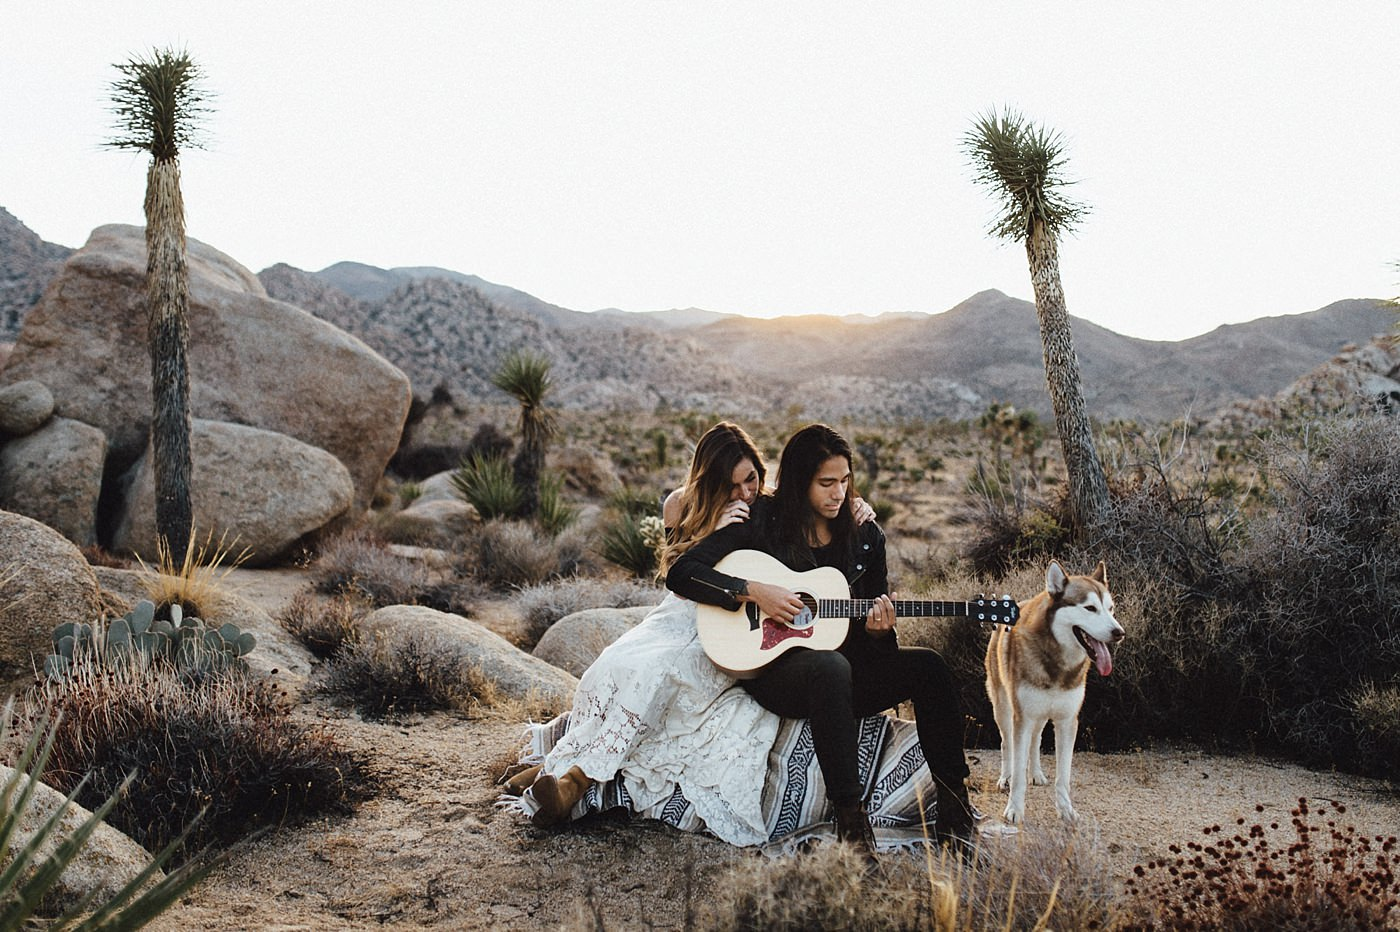 international-elopement-photographer_0192 Kinsey & Josh & Banjo Photographer in Joshuatreeinternational elopement photographer 0192